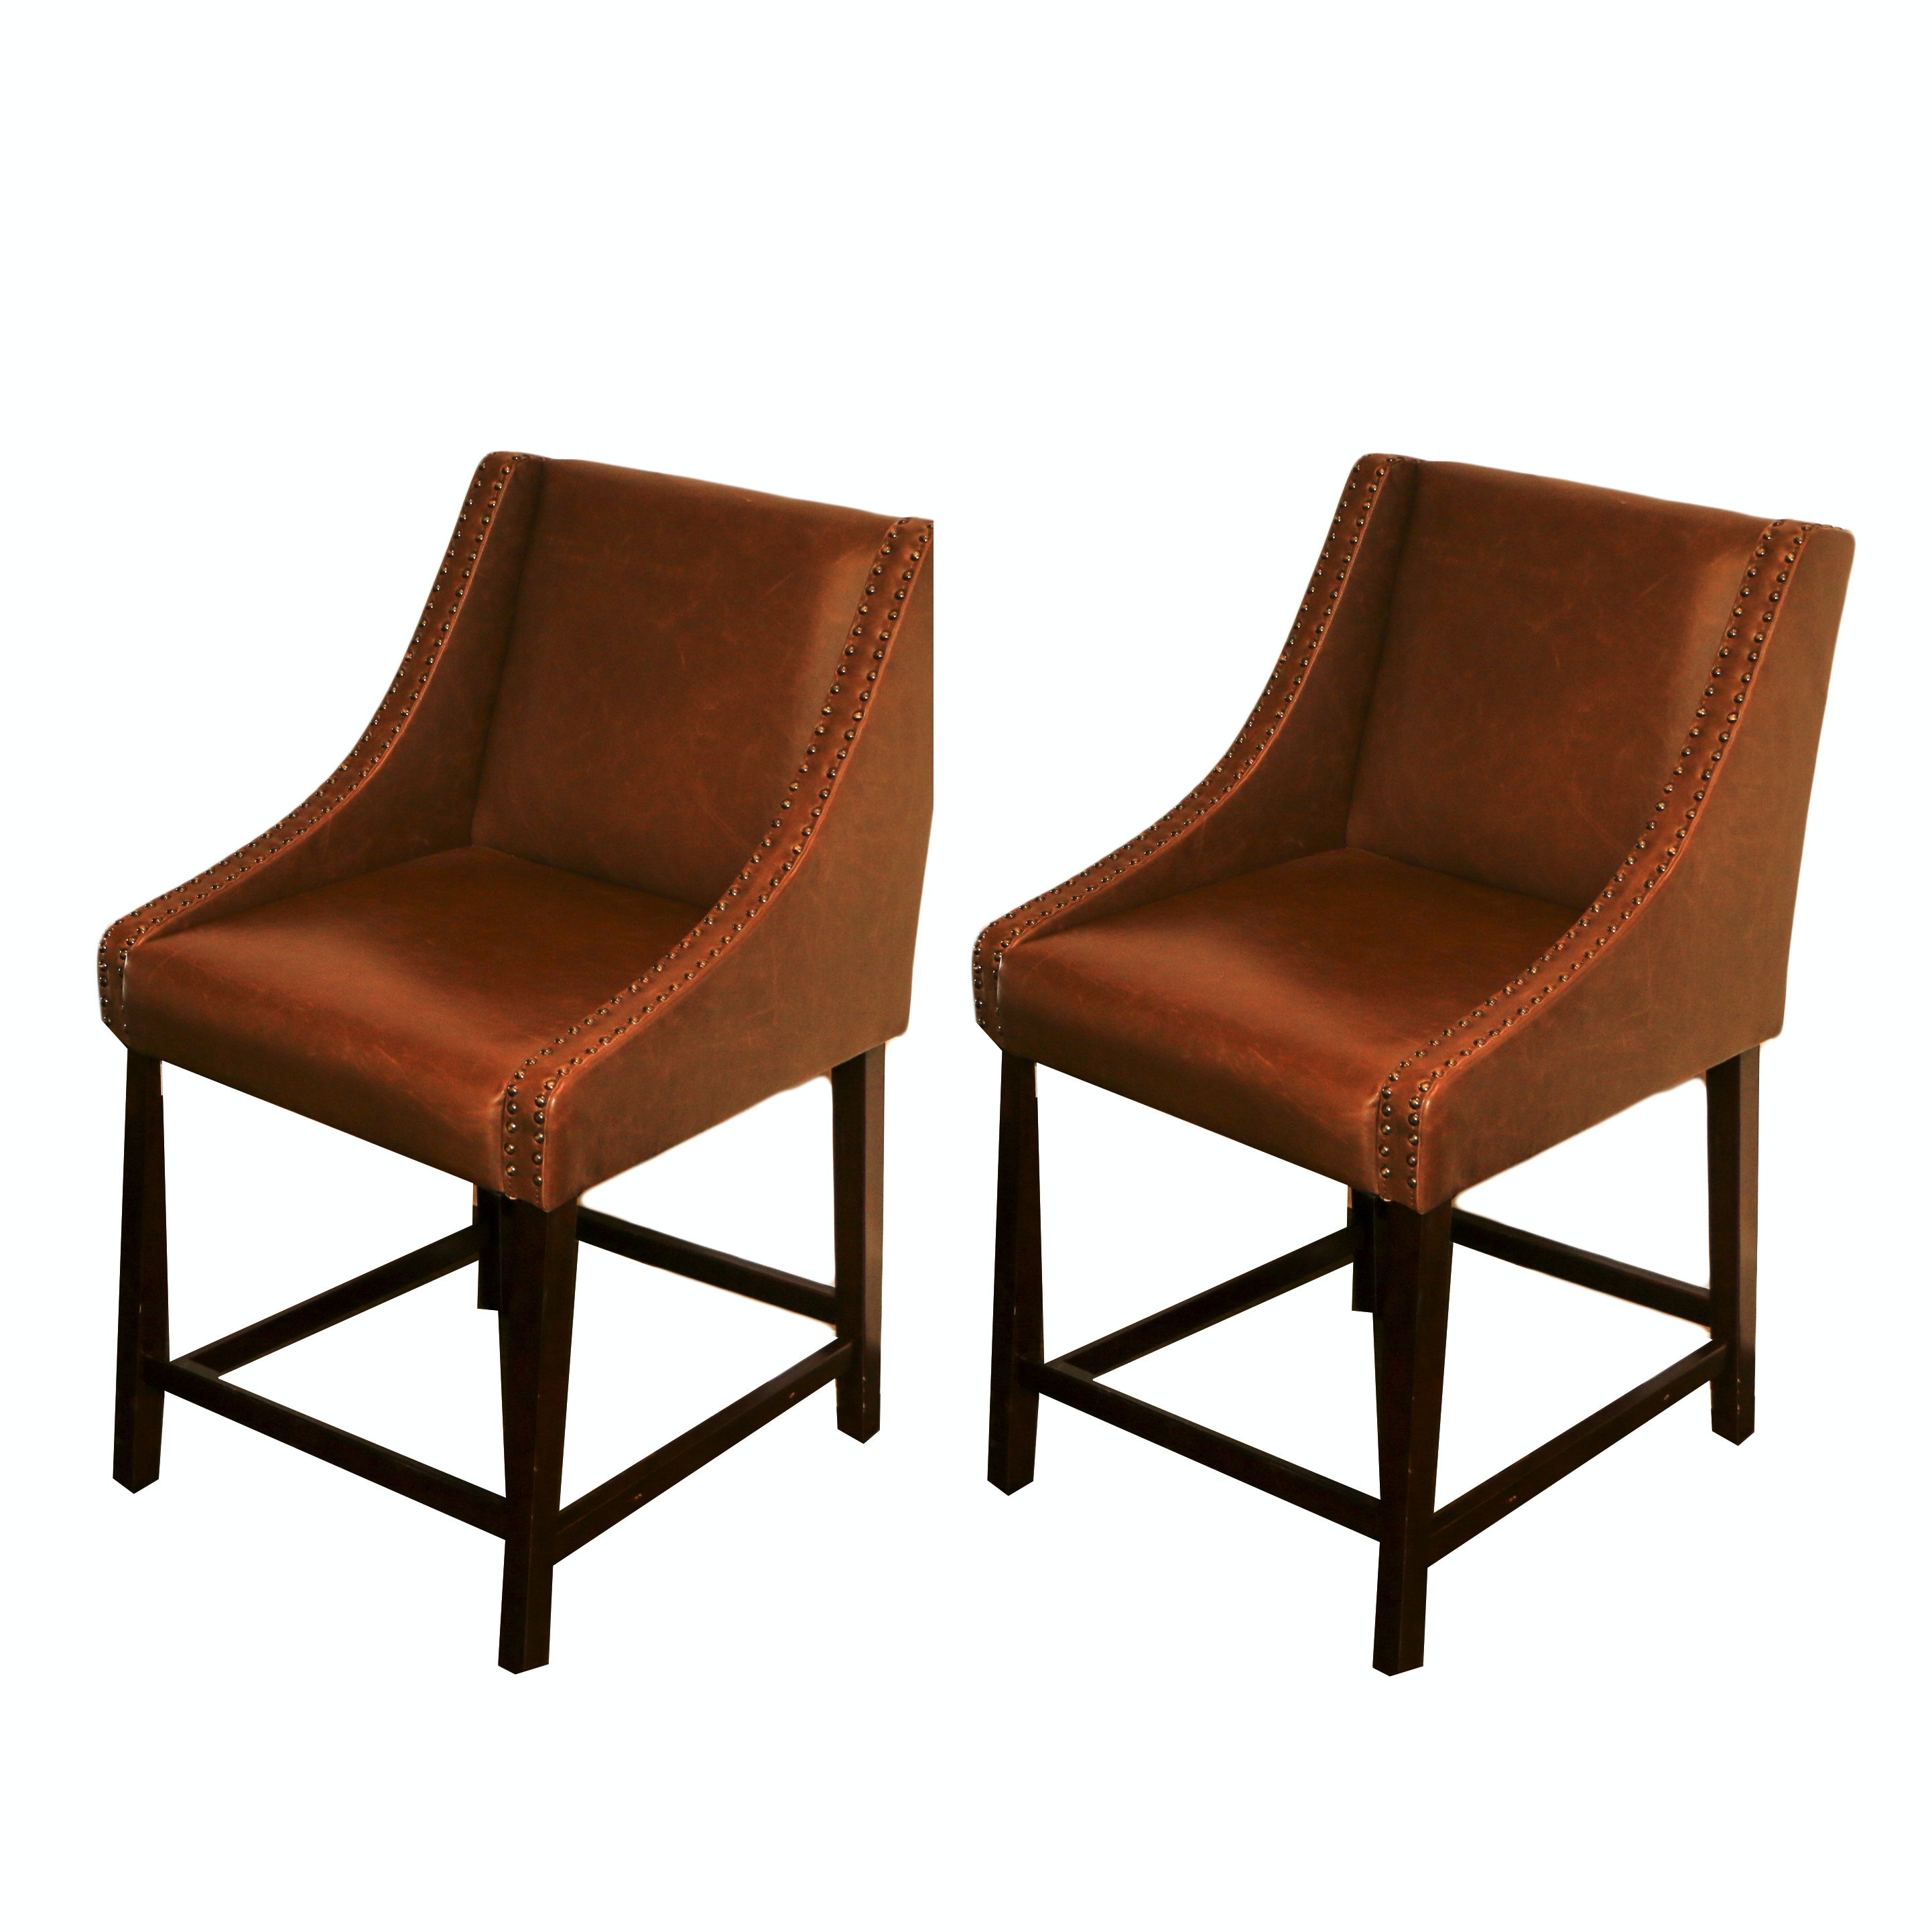 Faux Leather Upholstered Slope Arm Chair Pair, 21st Century